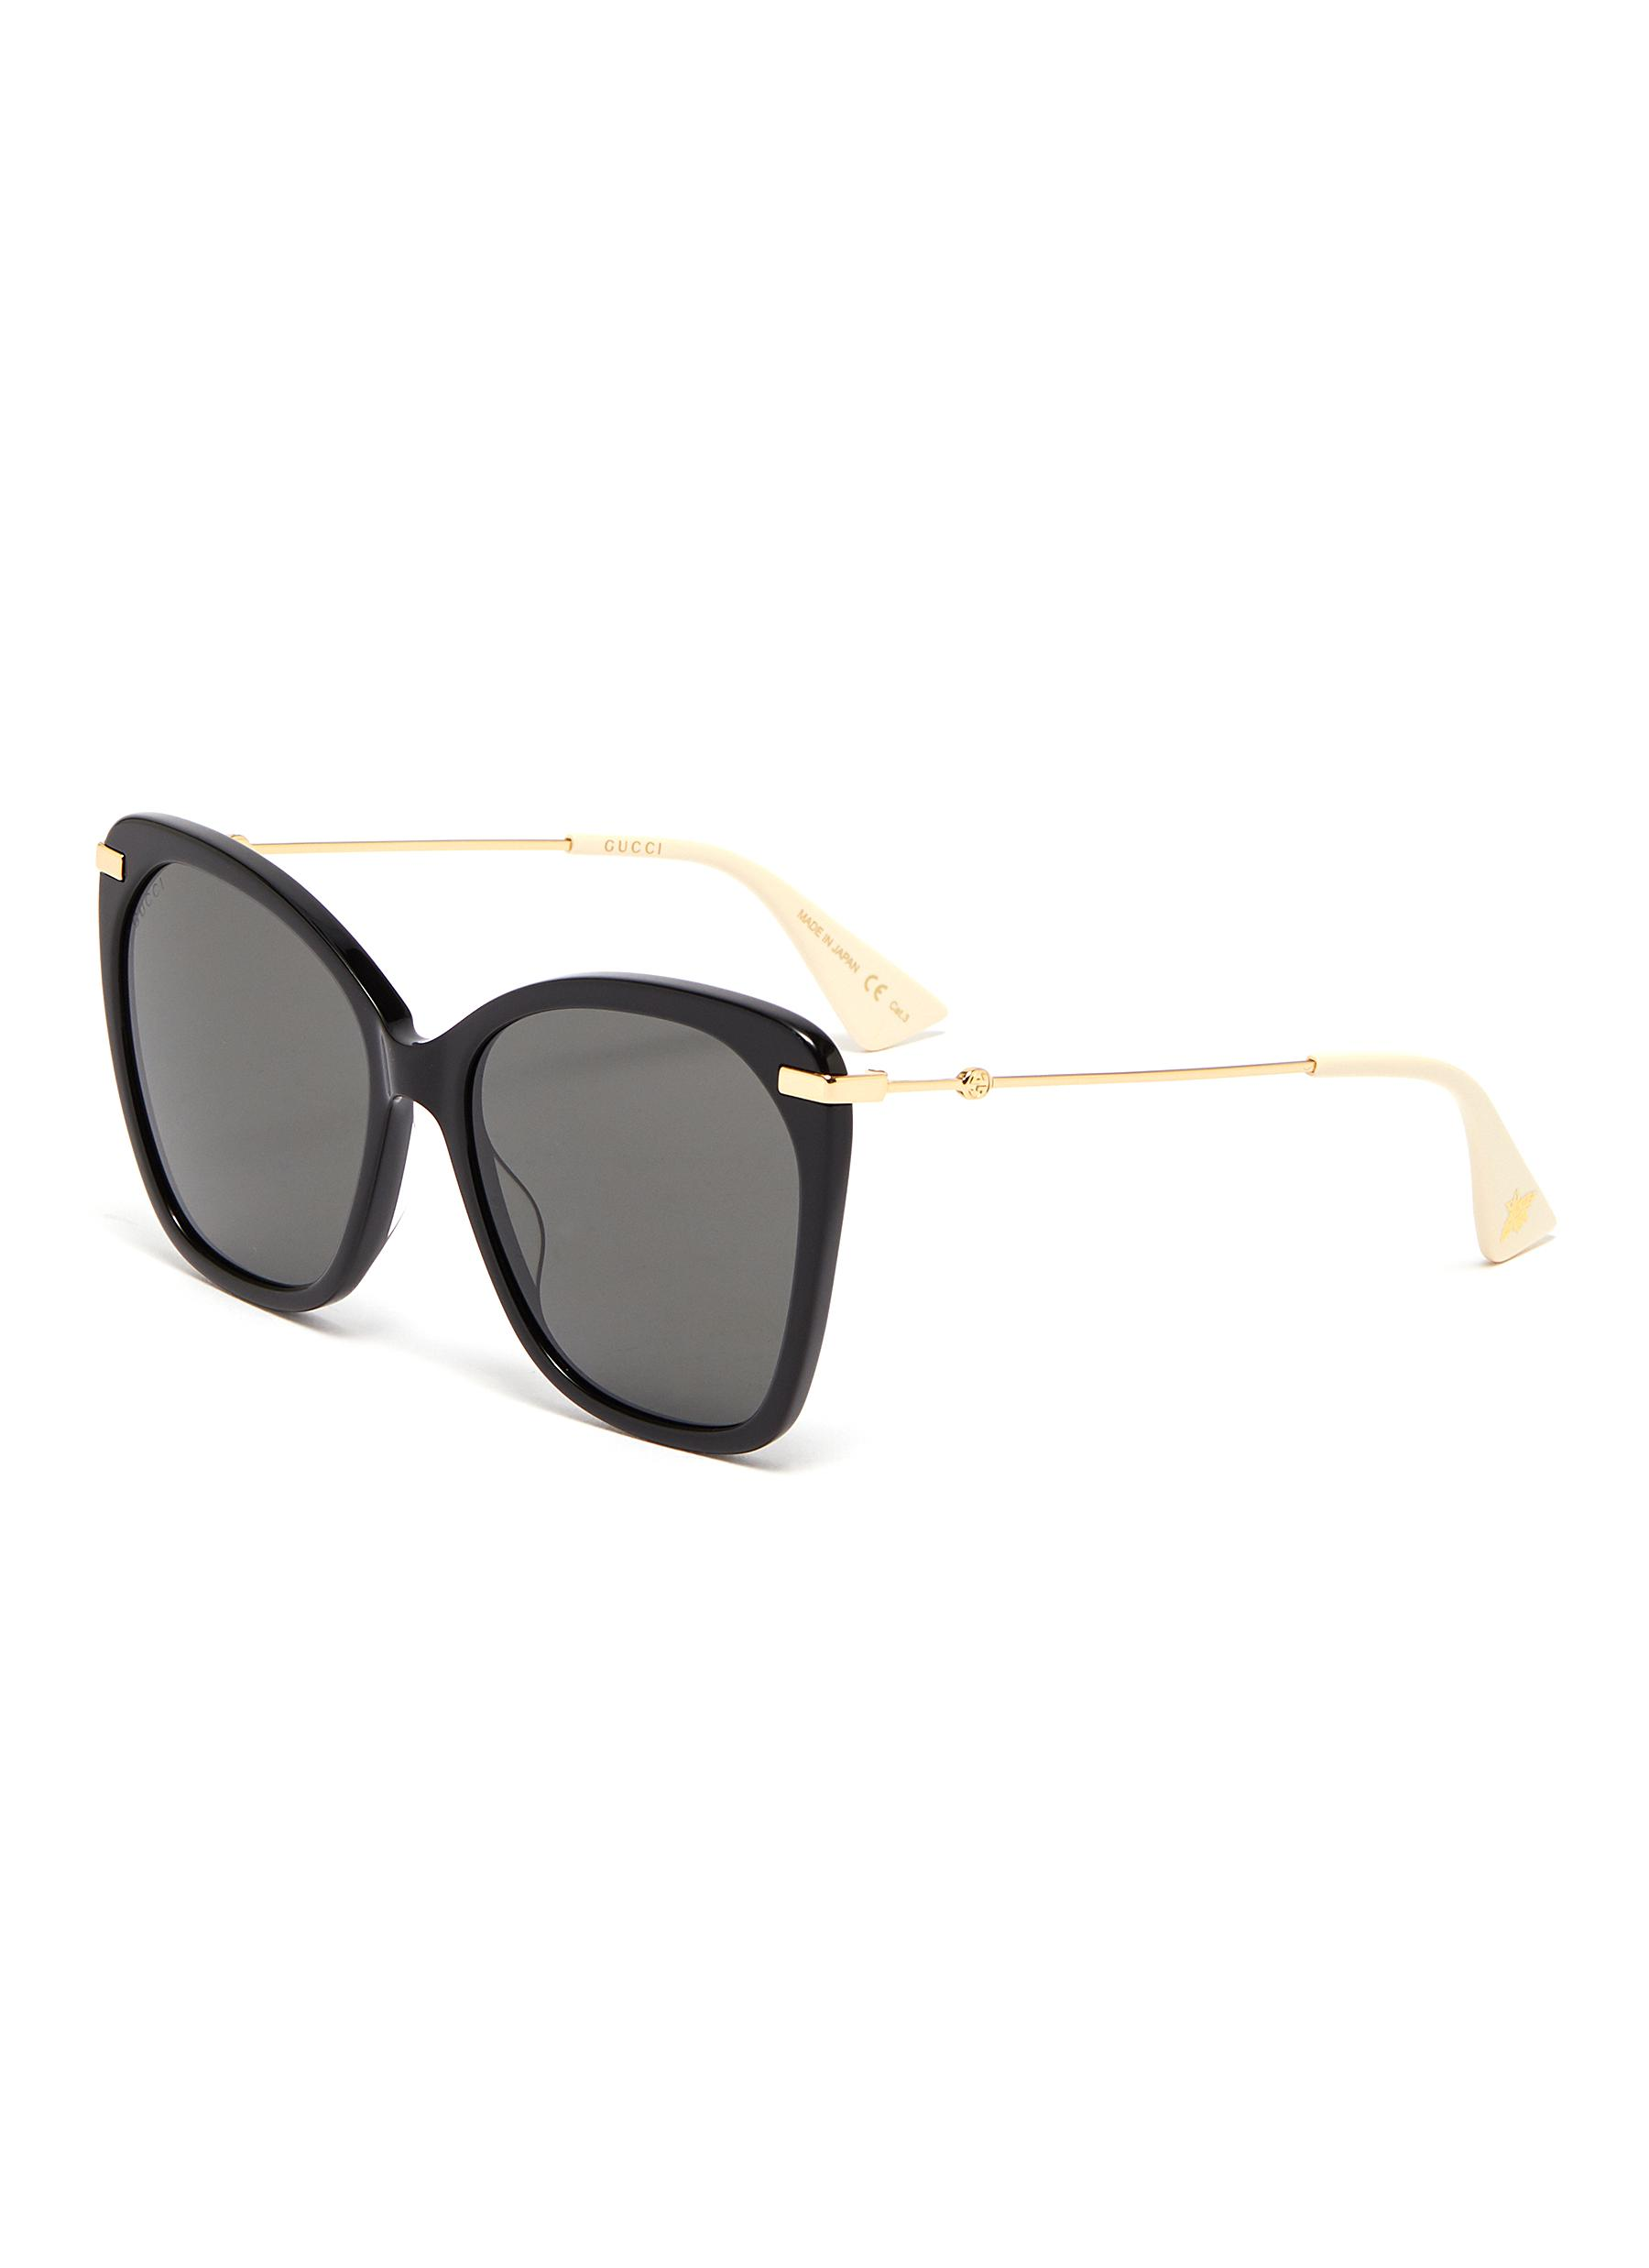 f4d60297062a Main View - Click To Enlarge - GUCCI - Metal temple oversized acetate  butterfly sunglasses